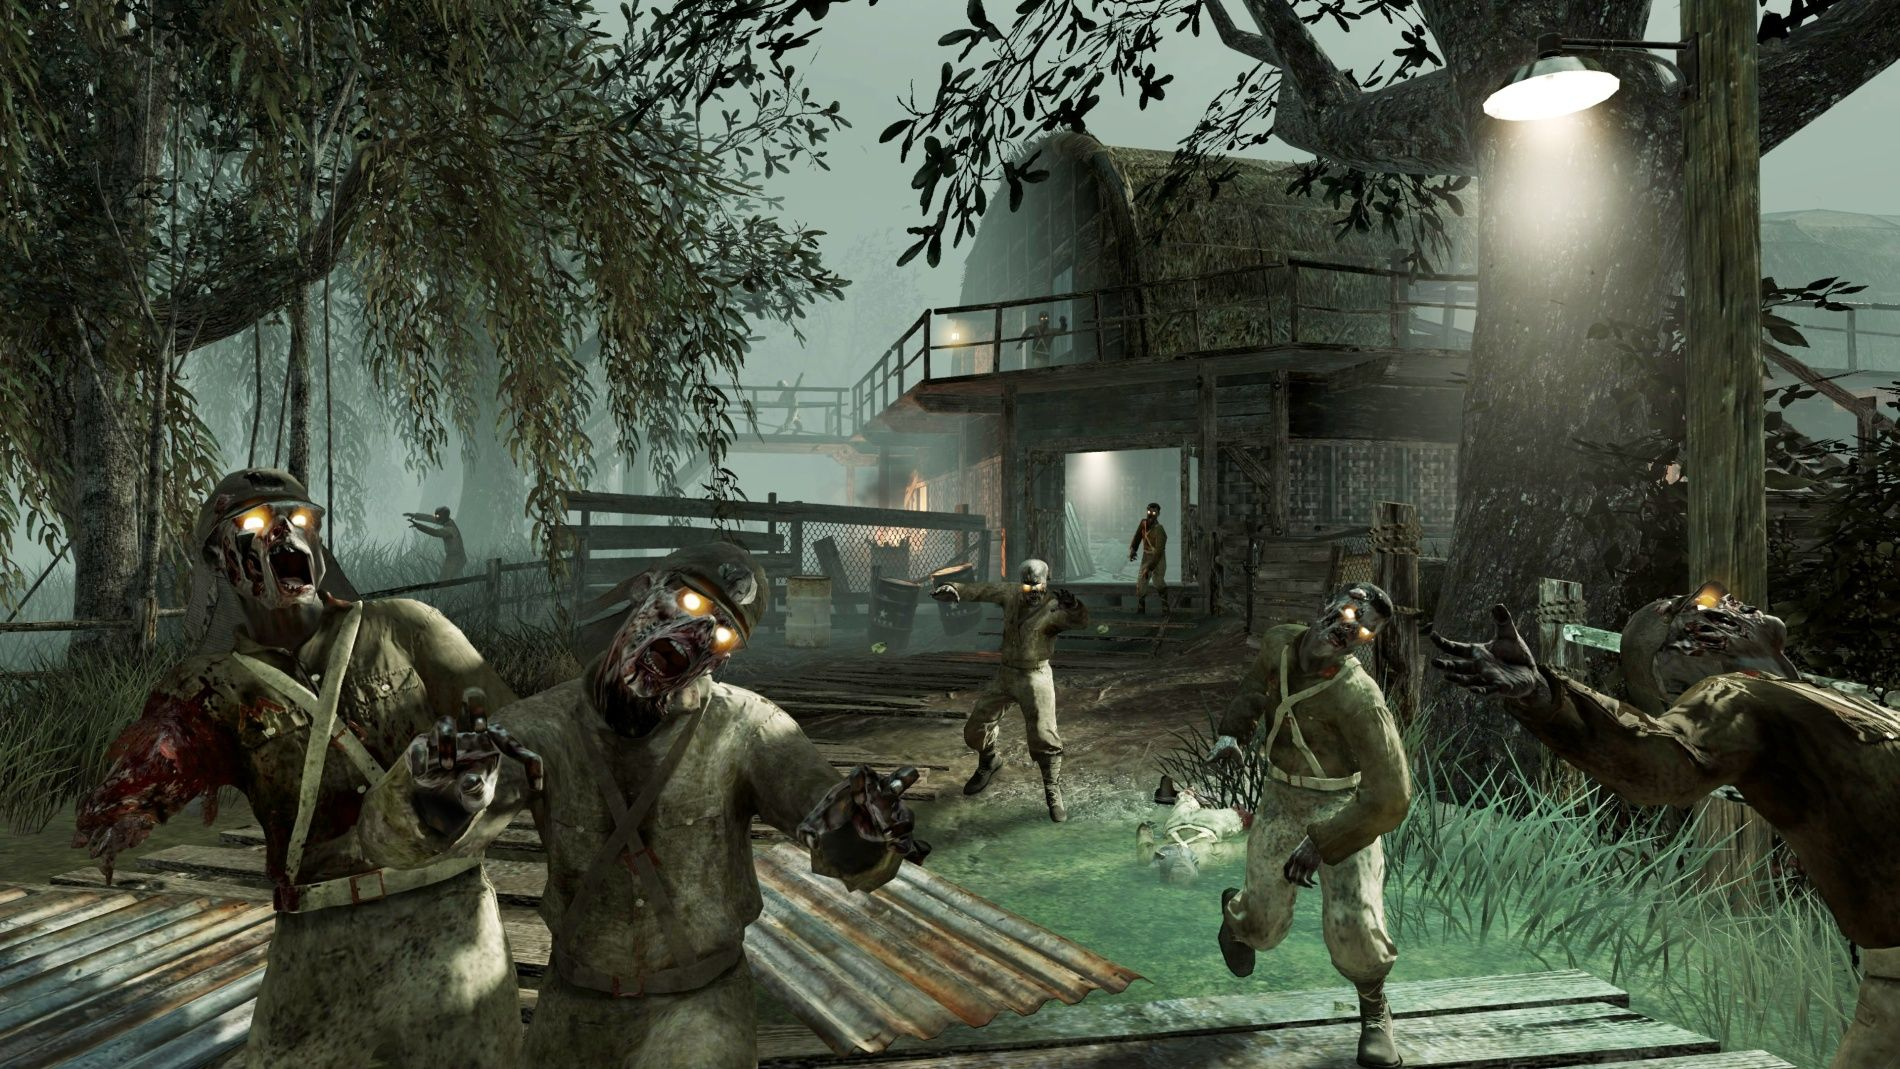 Call Of Duty Zombies Wallpapers Top Free Call Of Duty Zombies